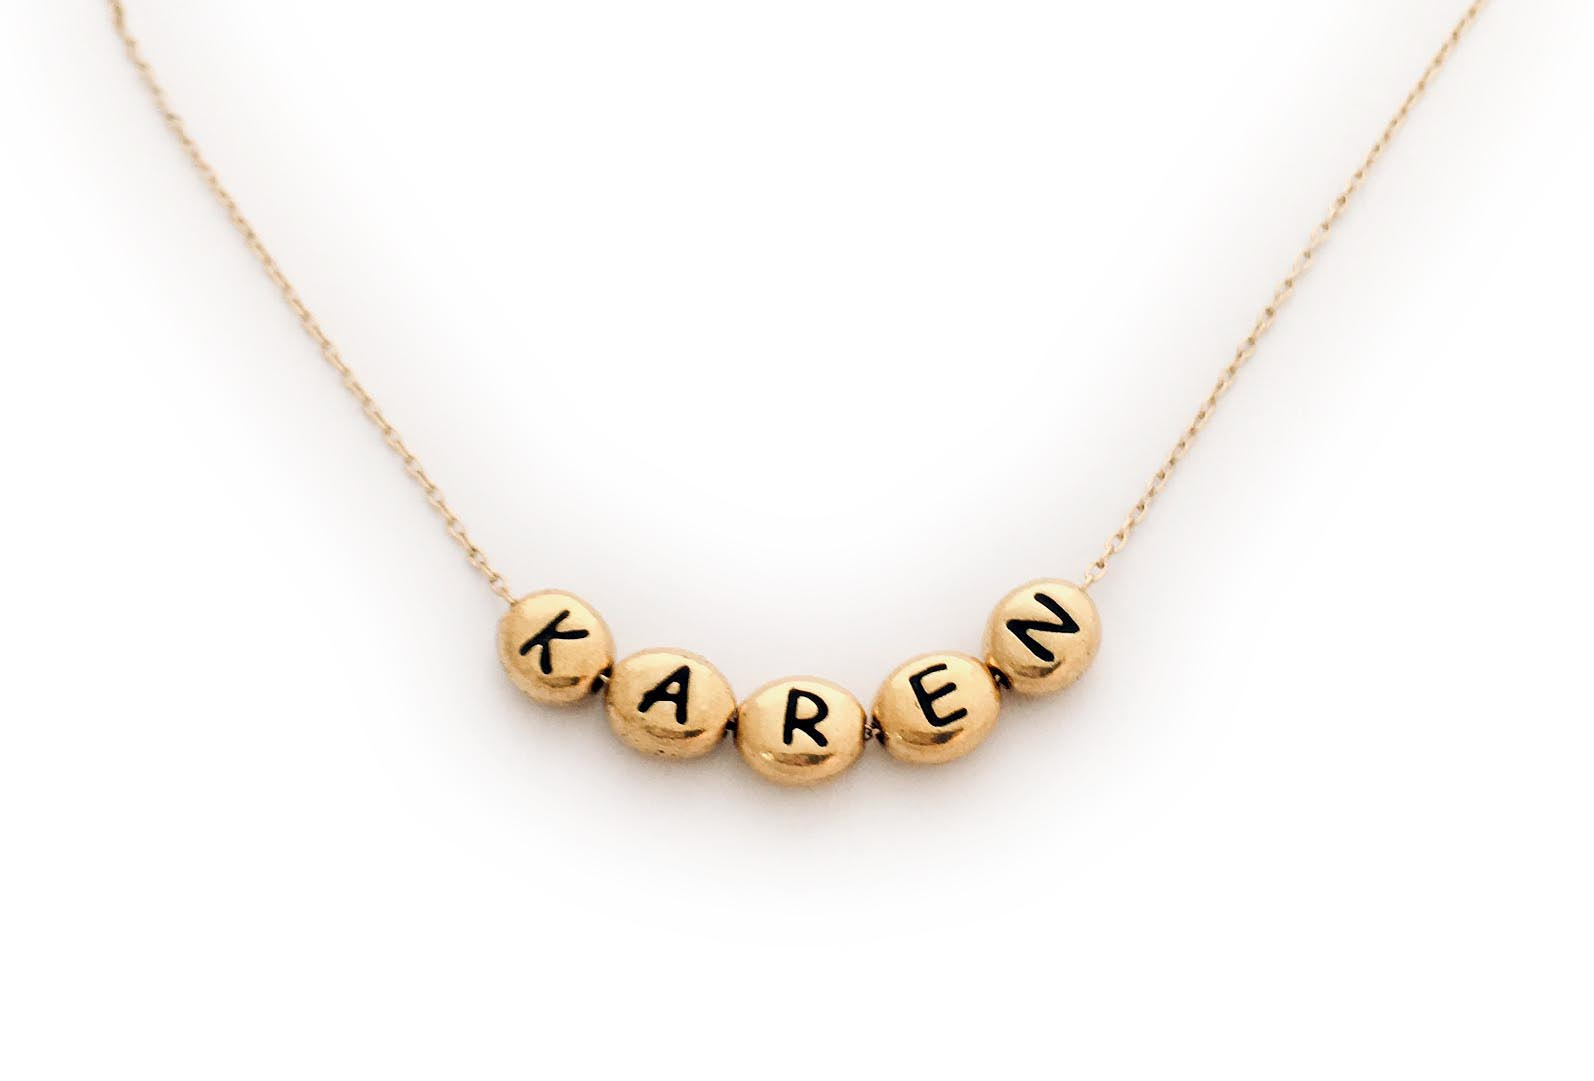 Gold Block Name Necklace with Gold Block Letters on a Gold Chain - JBL-N-Gold-Blocks - KAREN and 5 gold block letters